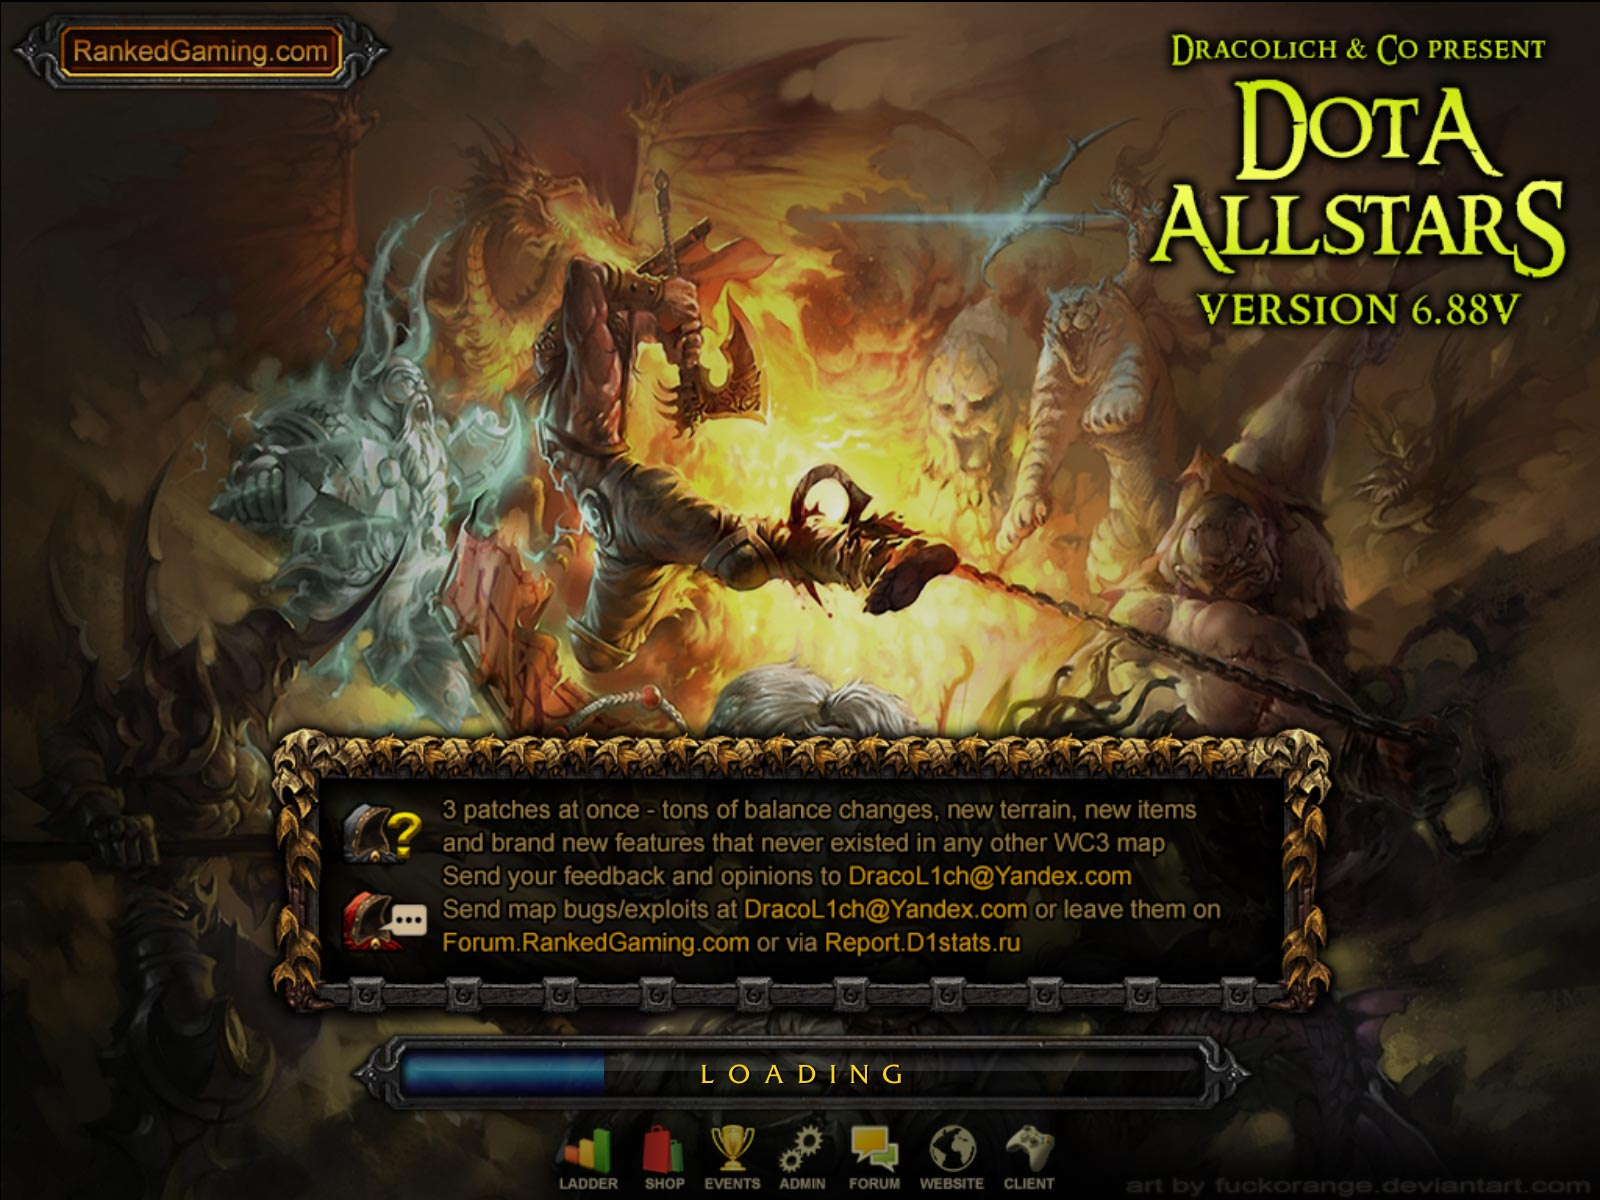 Dota Allstars 6.88v3 RGC Loading Screen